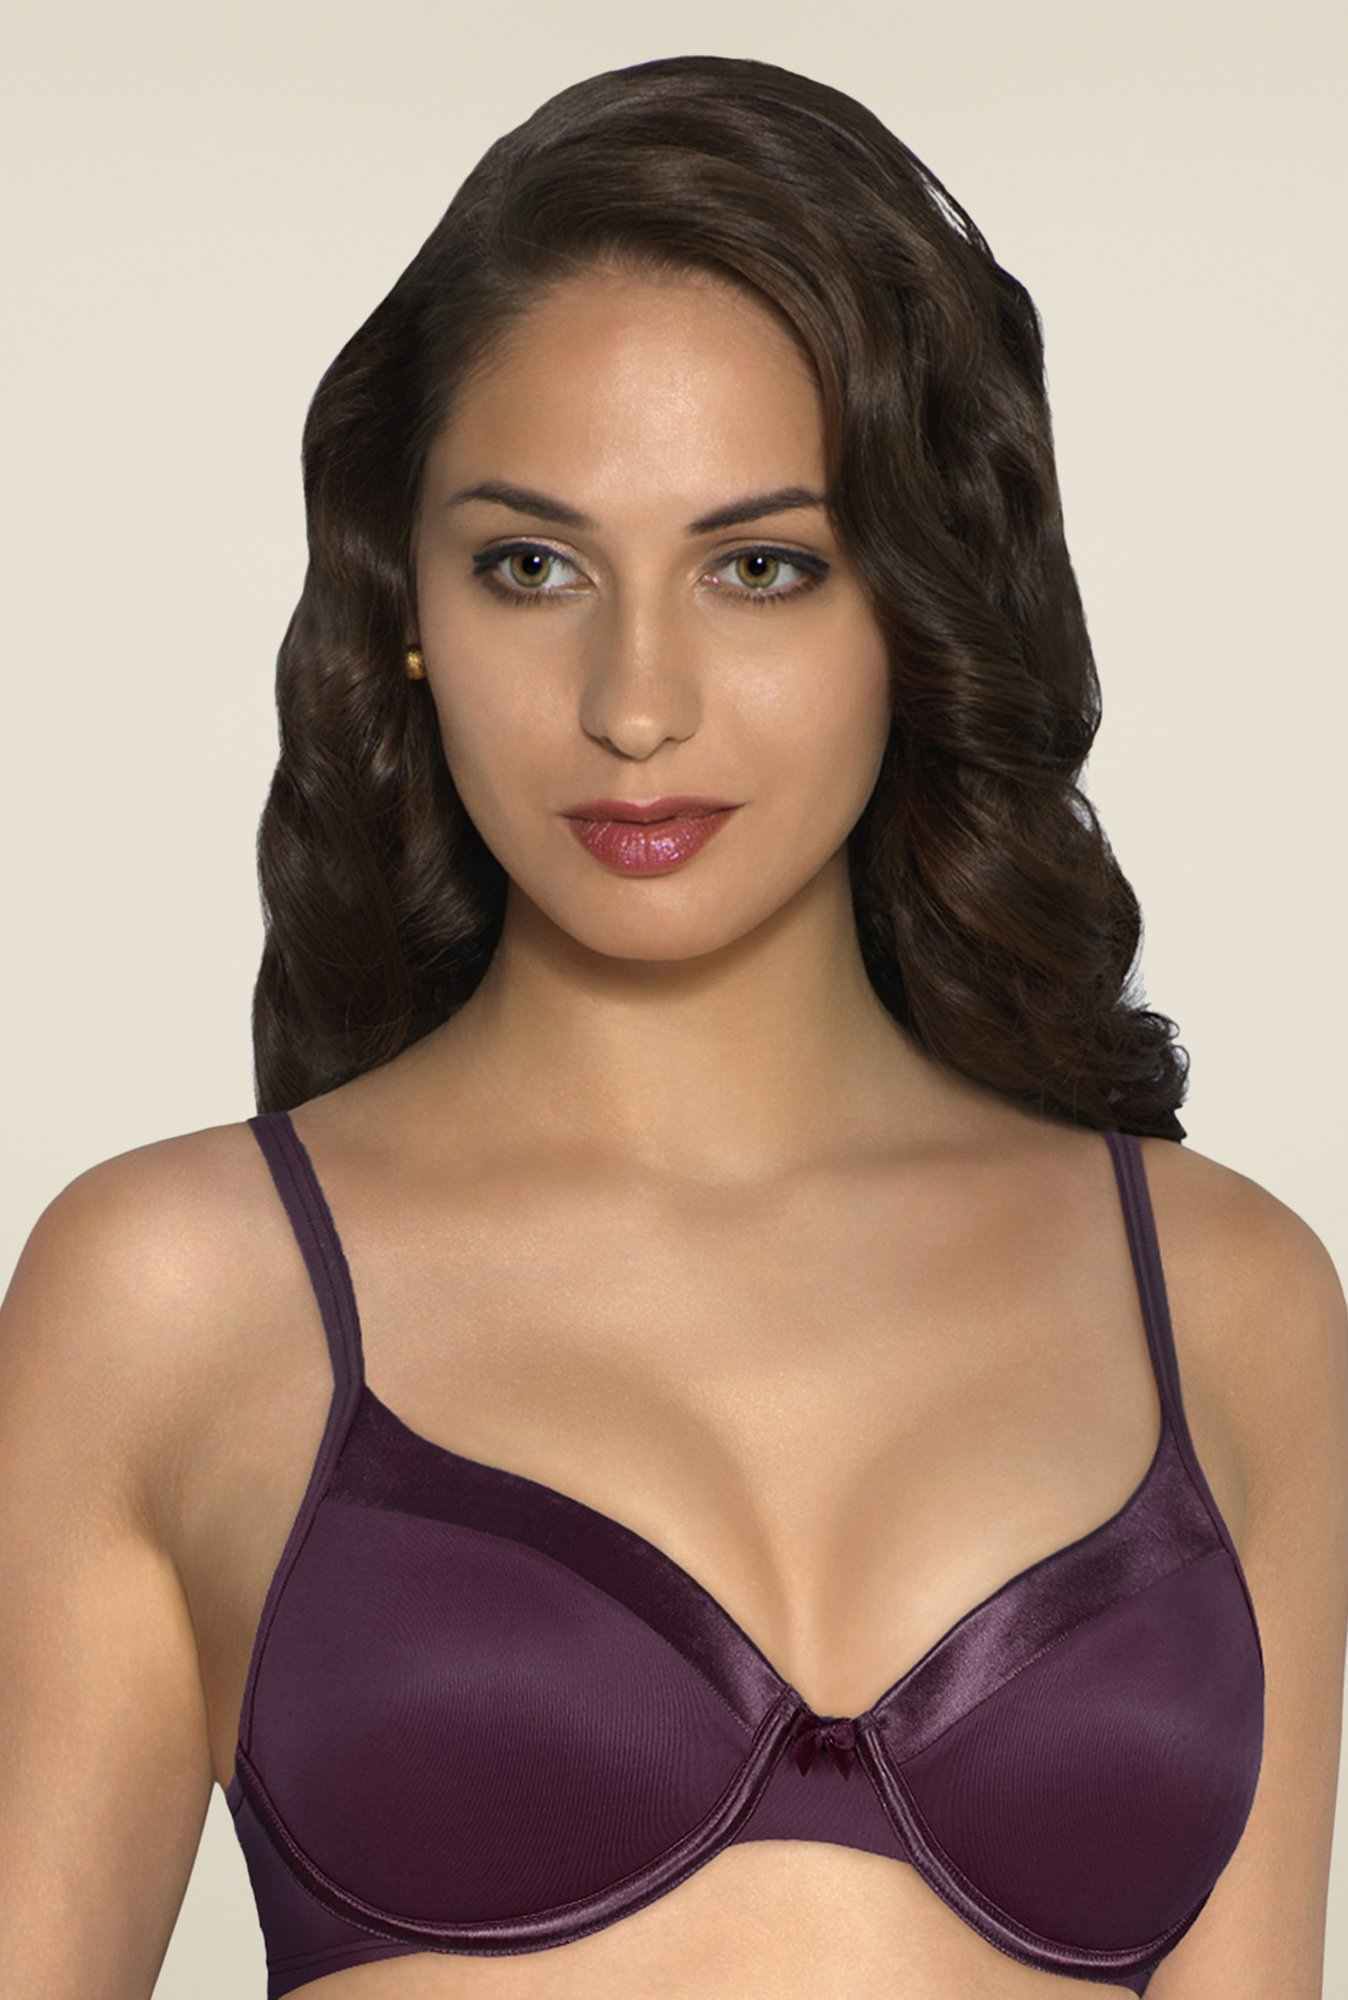 Amante Violet Satin Edge Padded Underwired Bra